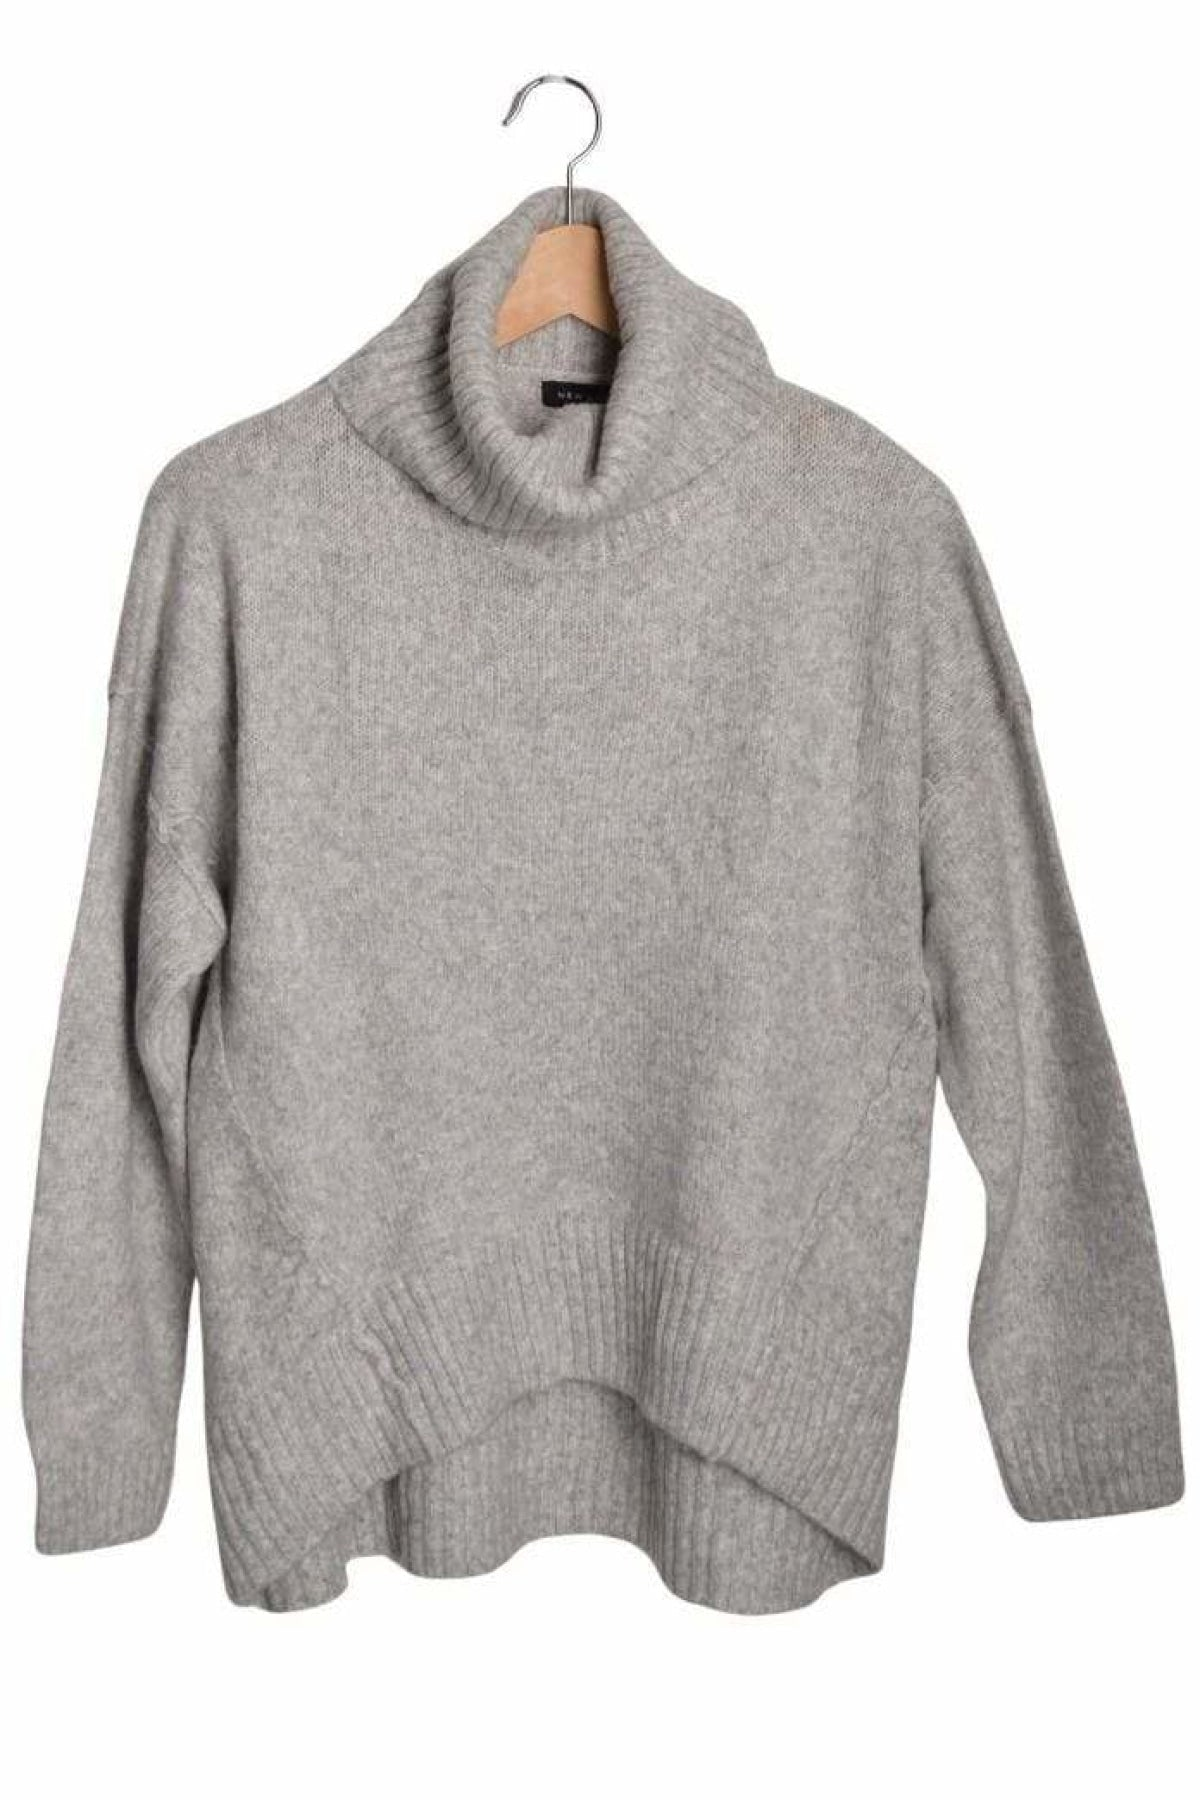 New Look Ex New Look Roll Neck Oversize Jumper | L / Grey Secret Label